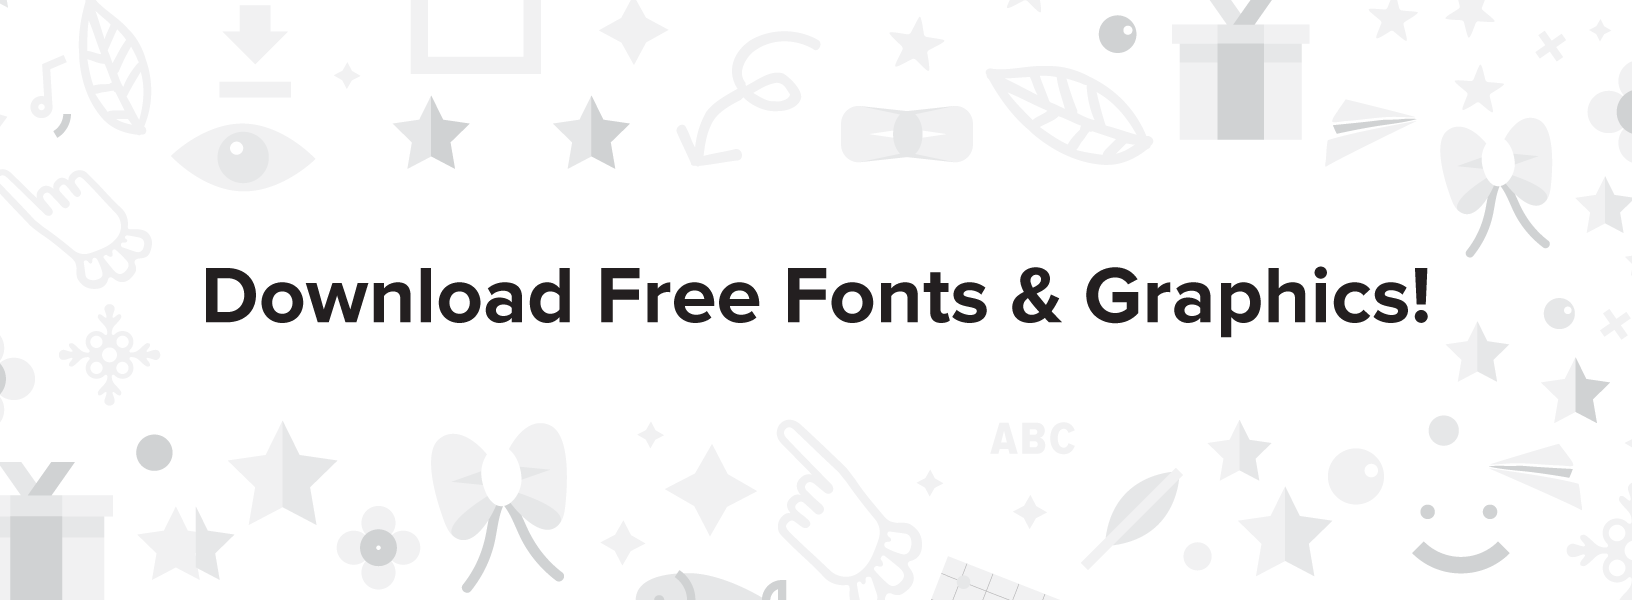 Download Free Stuff